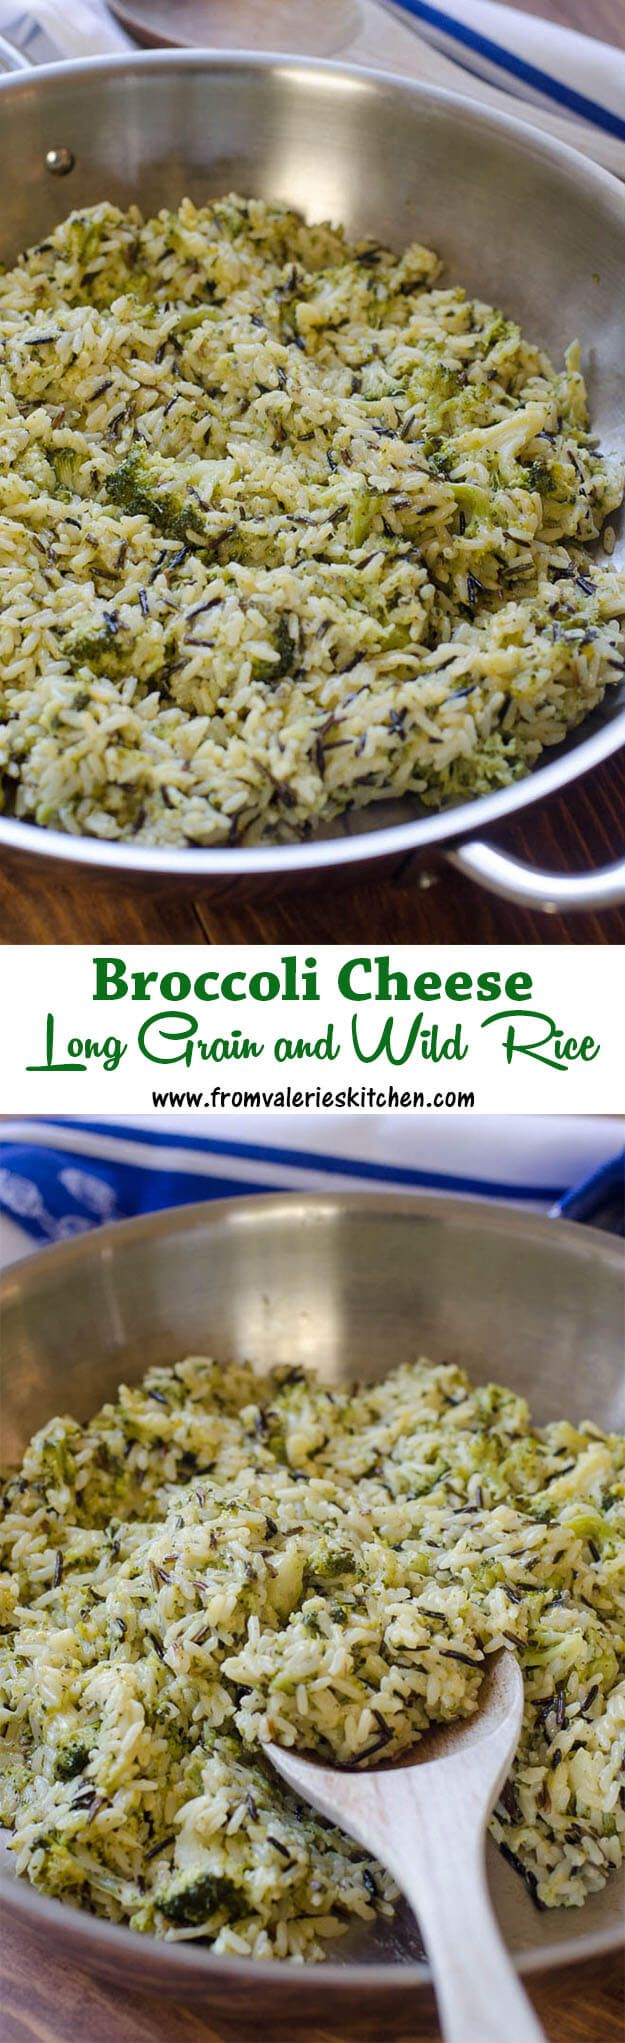 EASY 30 minute Broccoli Cheese Long Grain and Wild Rice! ~ http://www.fromvalerieskitchen.com